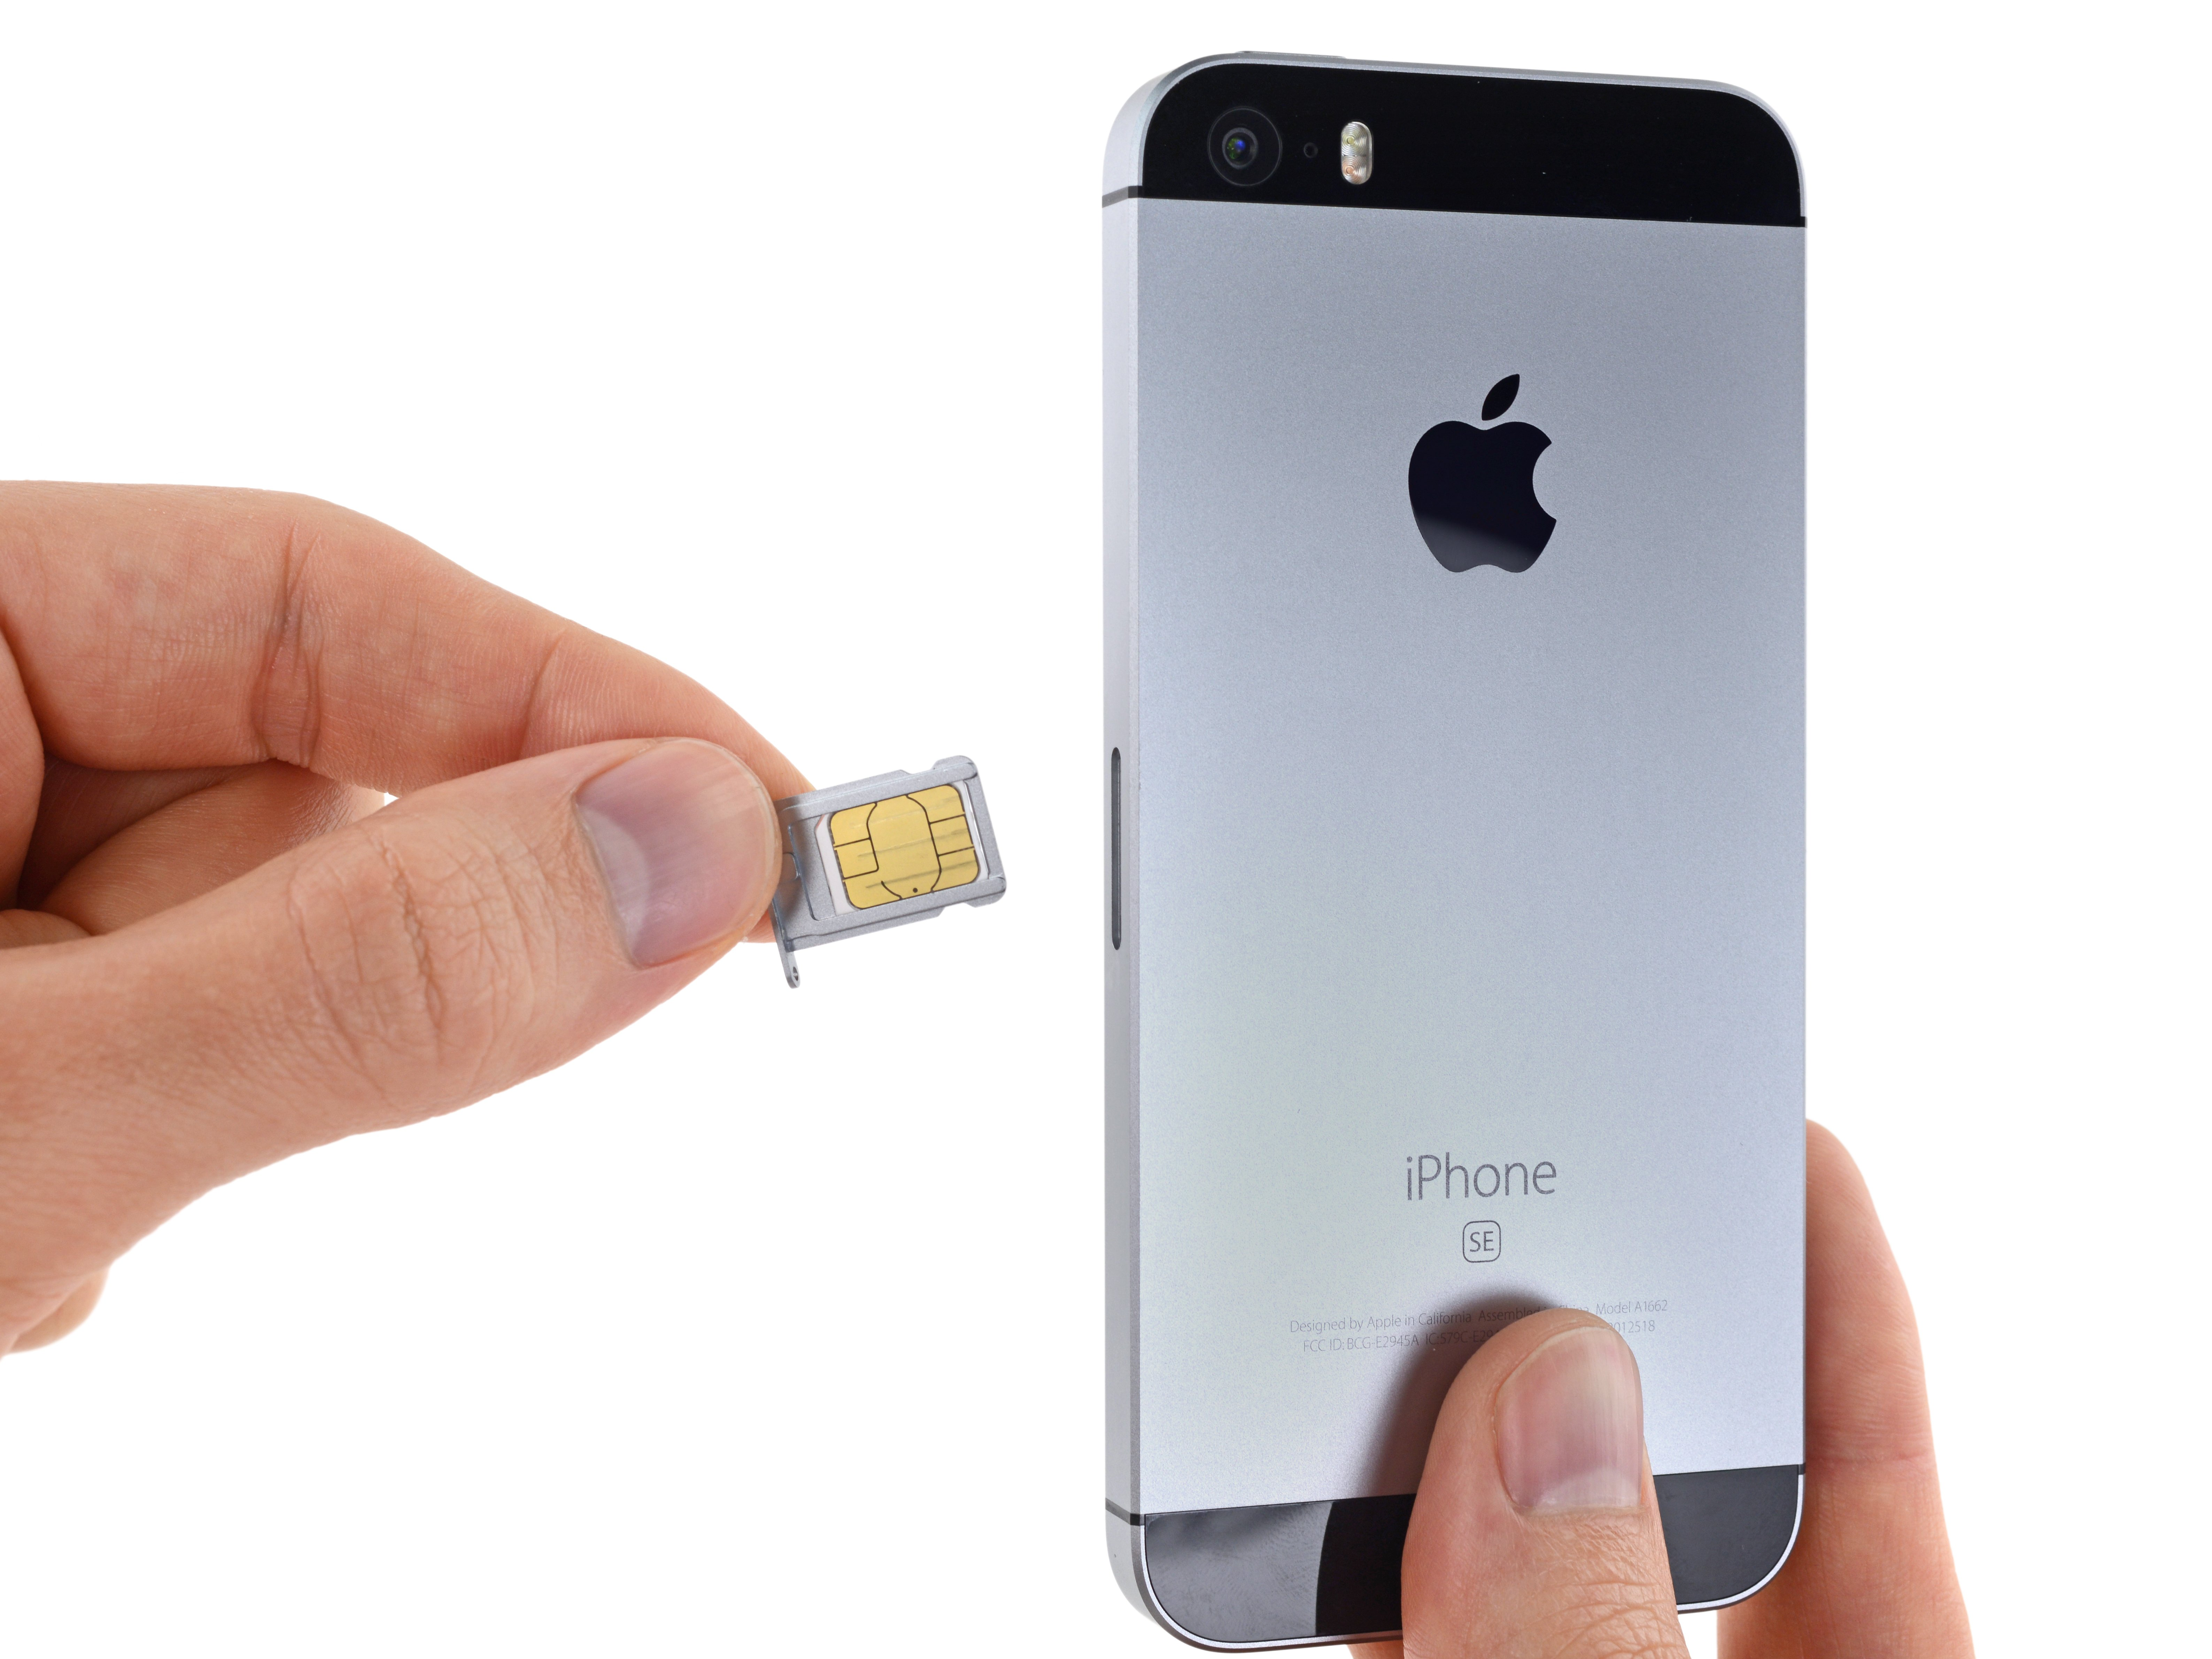 carte sim pour iphone se iPhone SE SIM Tray Replacement   iFixit Repair Guide